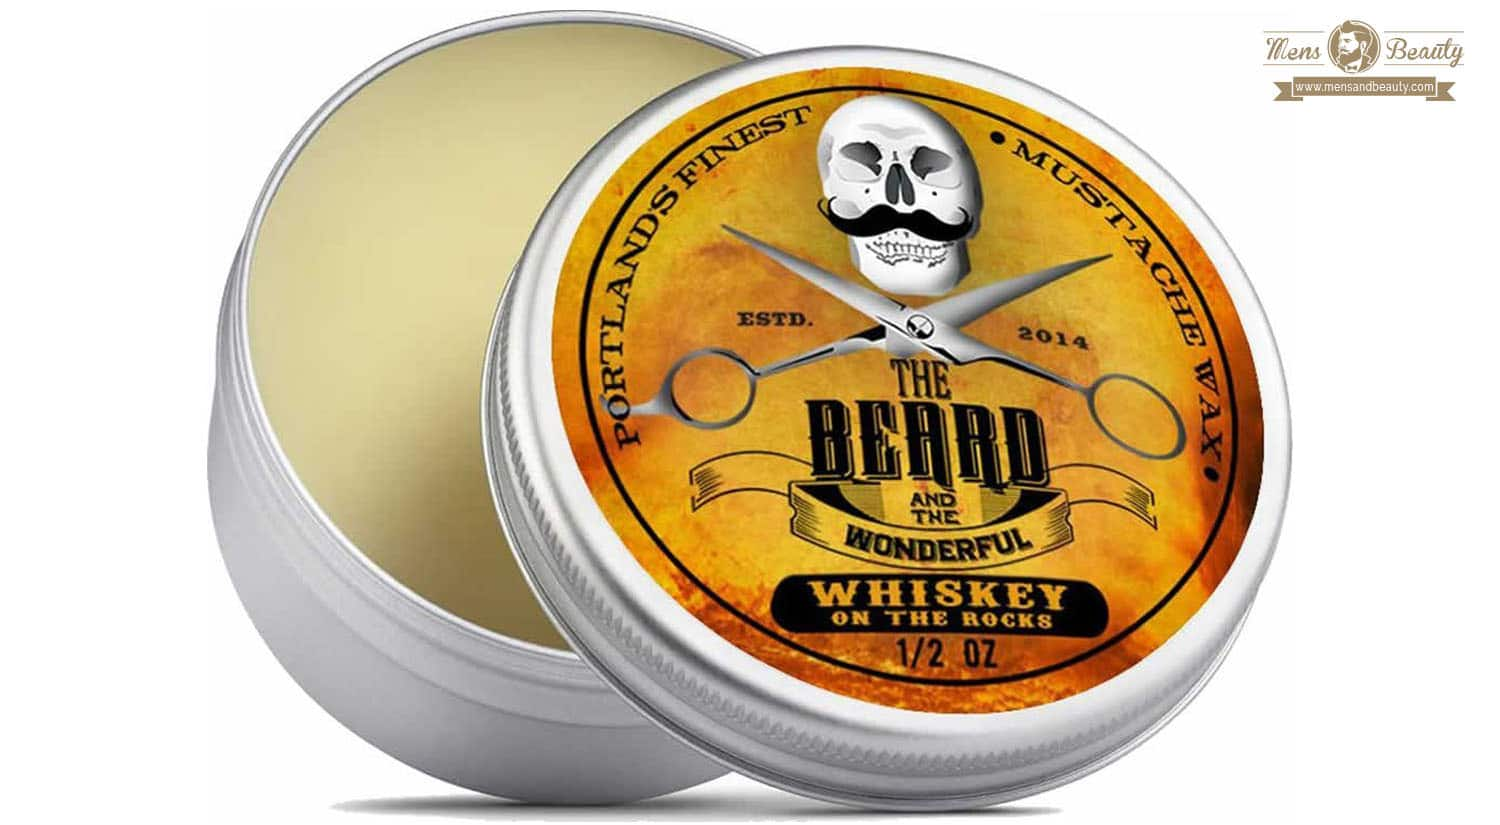 mejores productos barba bigote hombre cera the beard and the wonderful